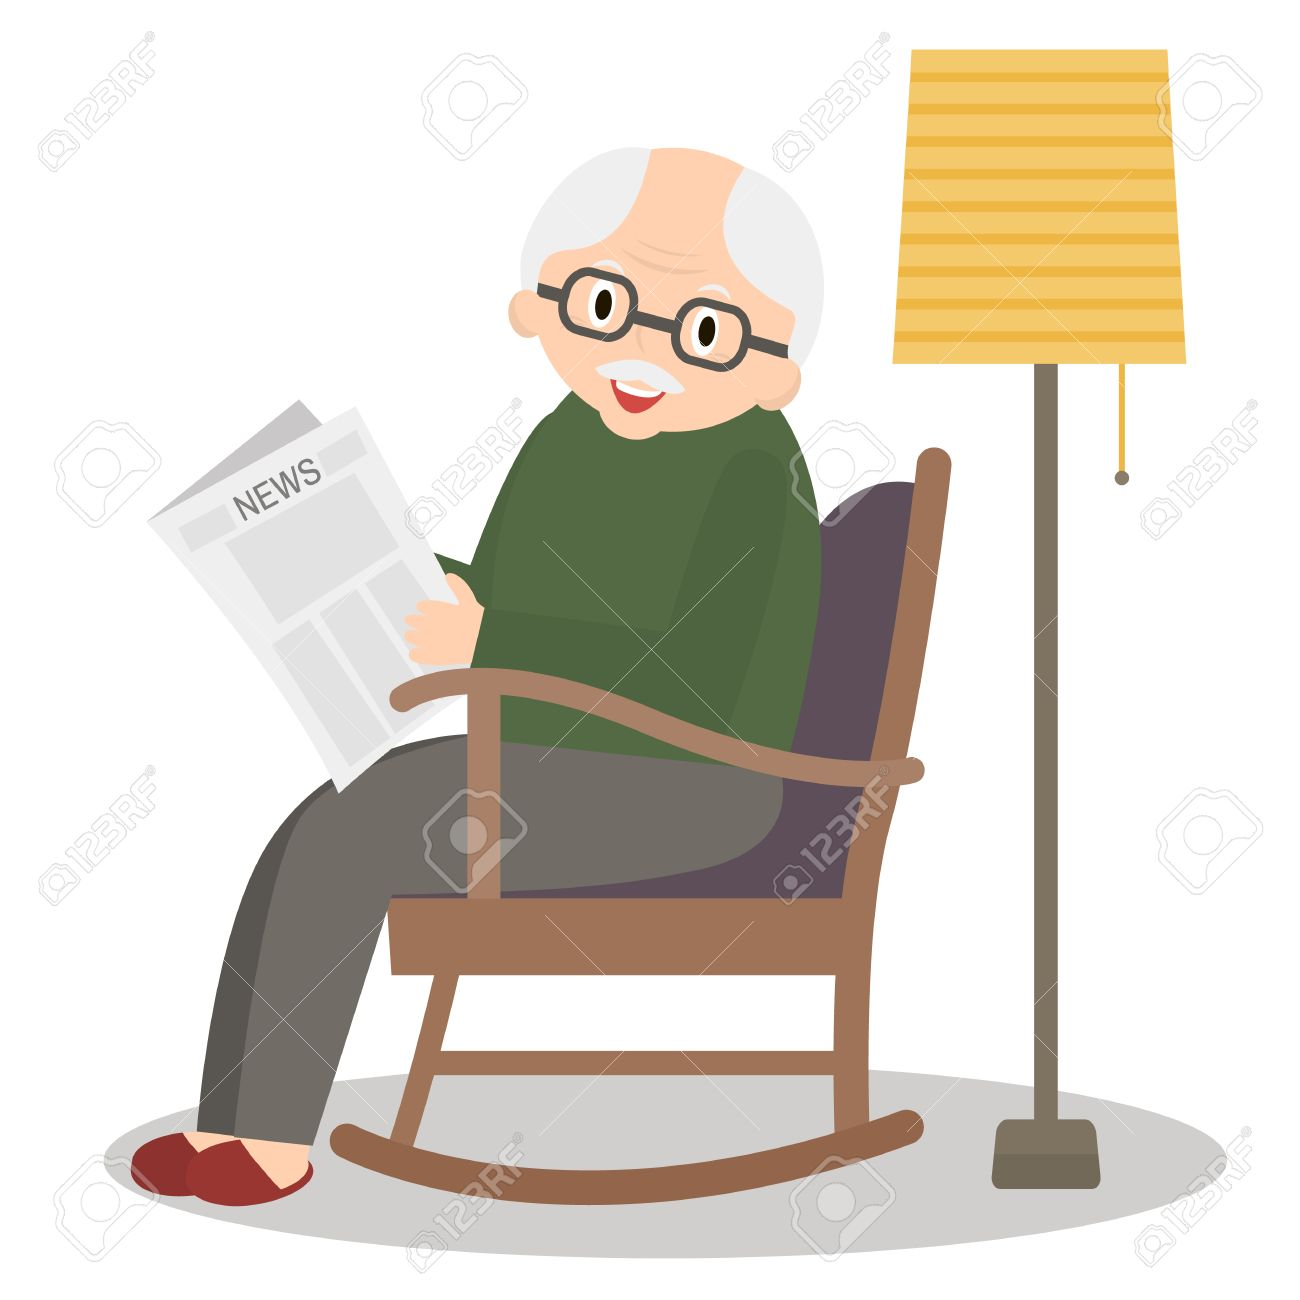 Grandfather Sitting In Rocking Chair Old Man Leisure Time Grandpa